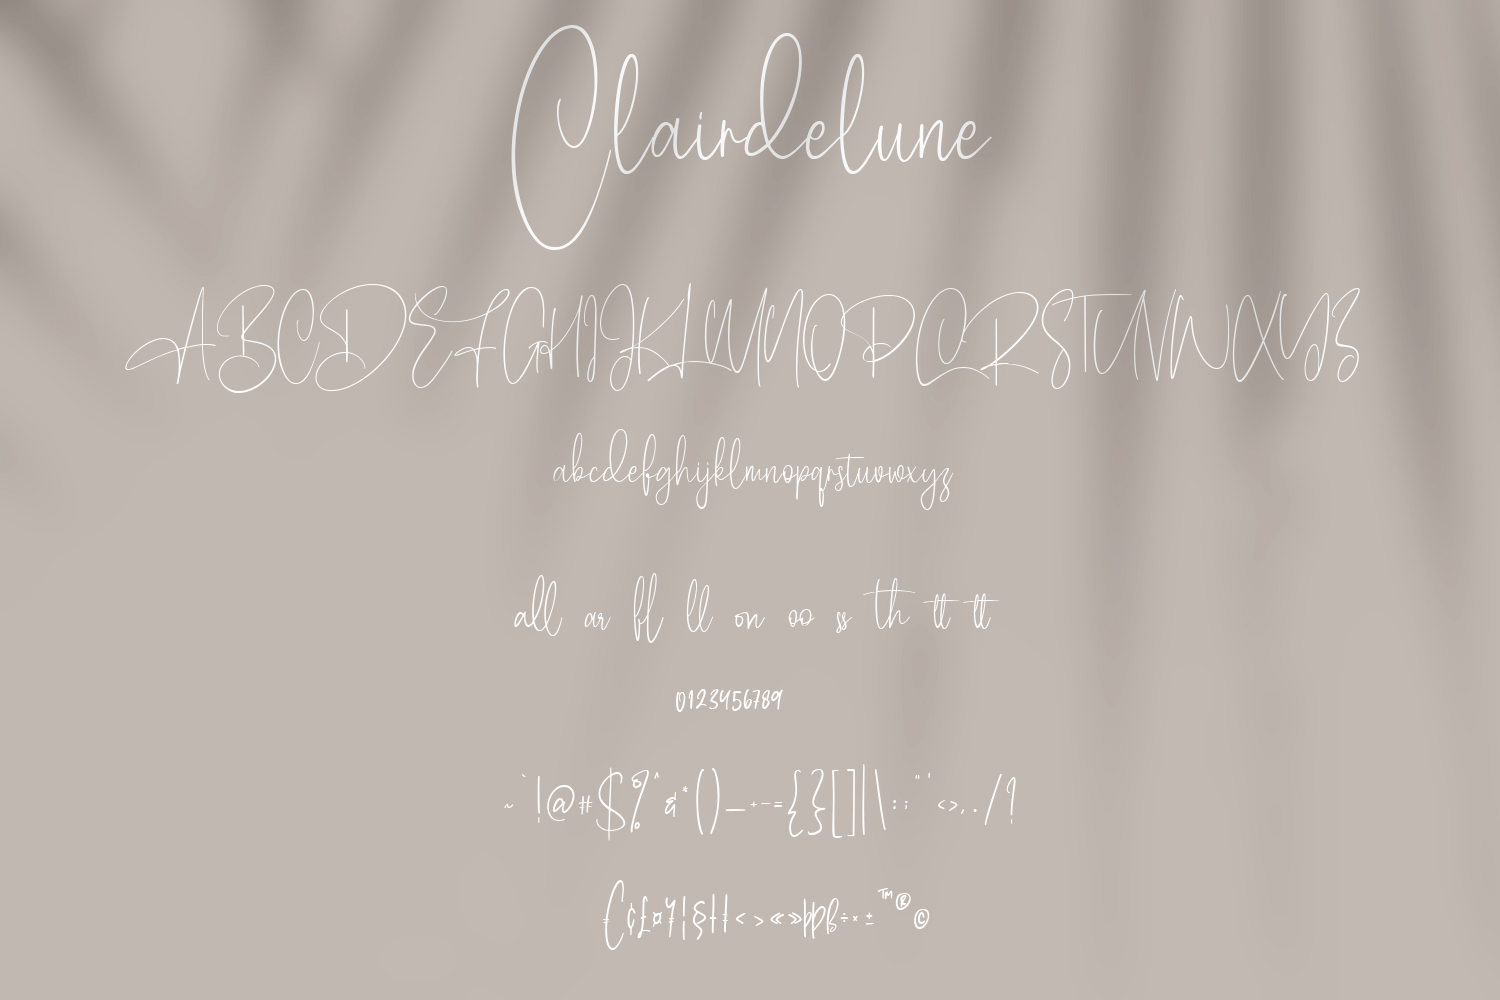 Clairdelune Calligraphy Modern Script Font-3